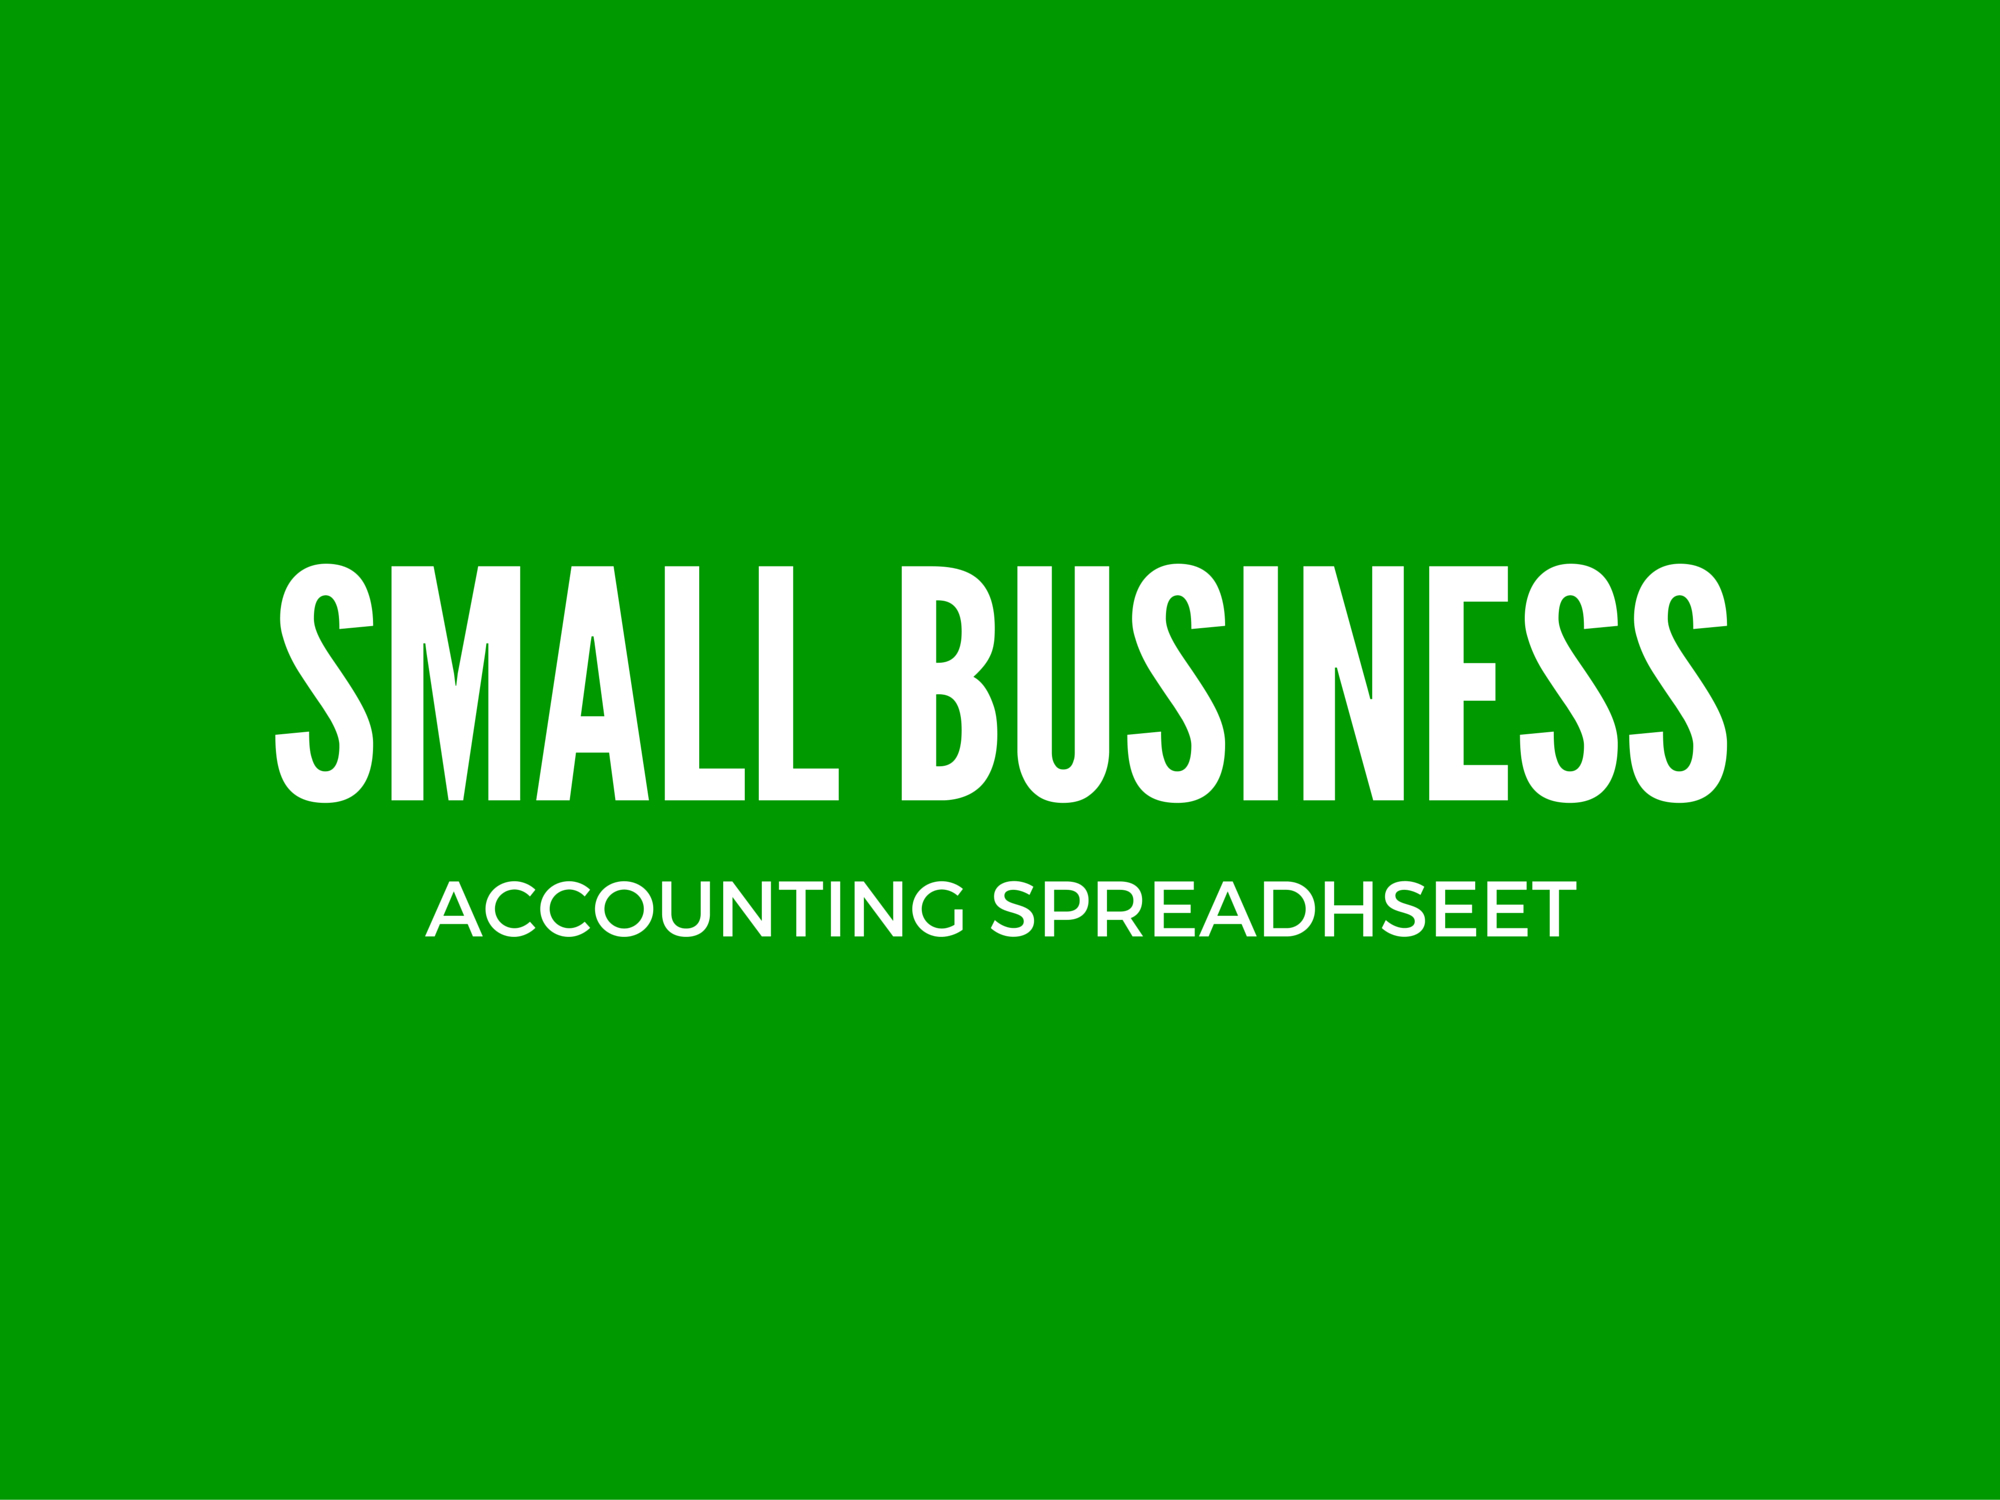 Income And Expenditure Spreadsheet For Small Business Throughout Income And Expenditure Template For Small Business  Excel